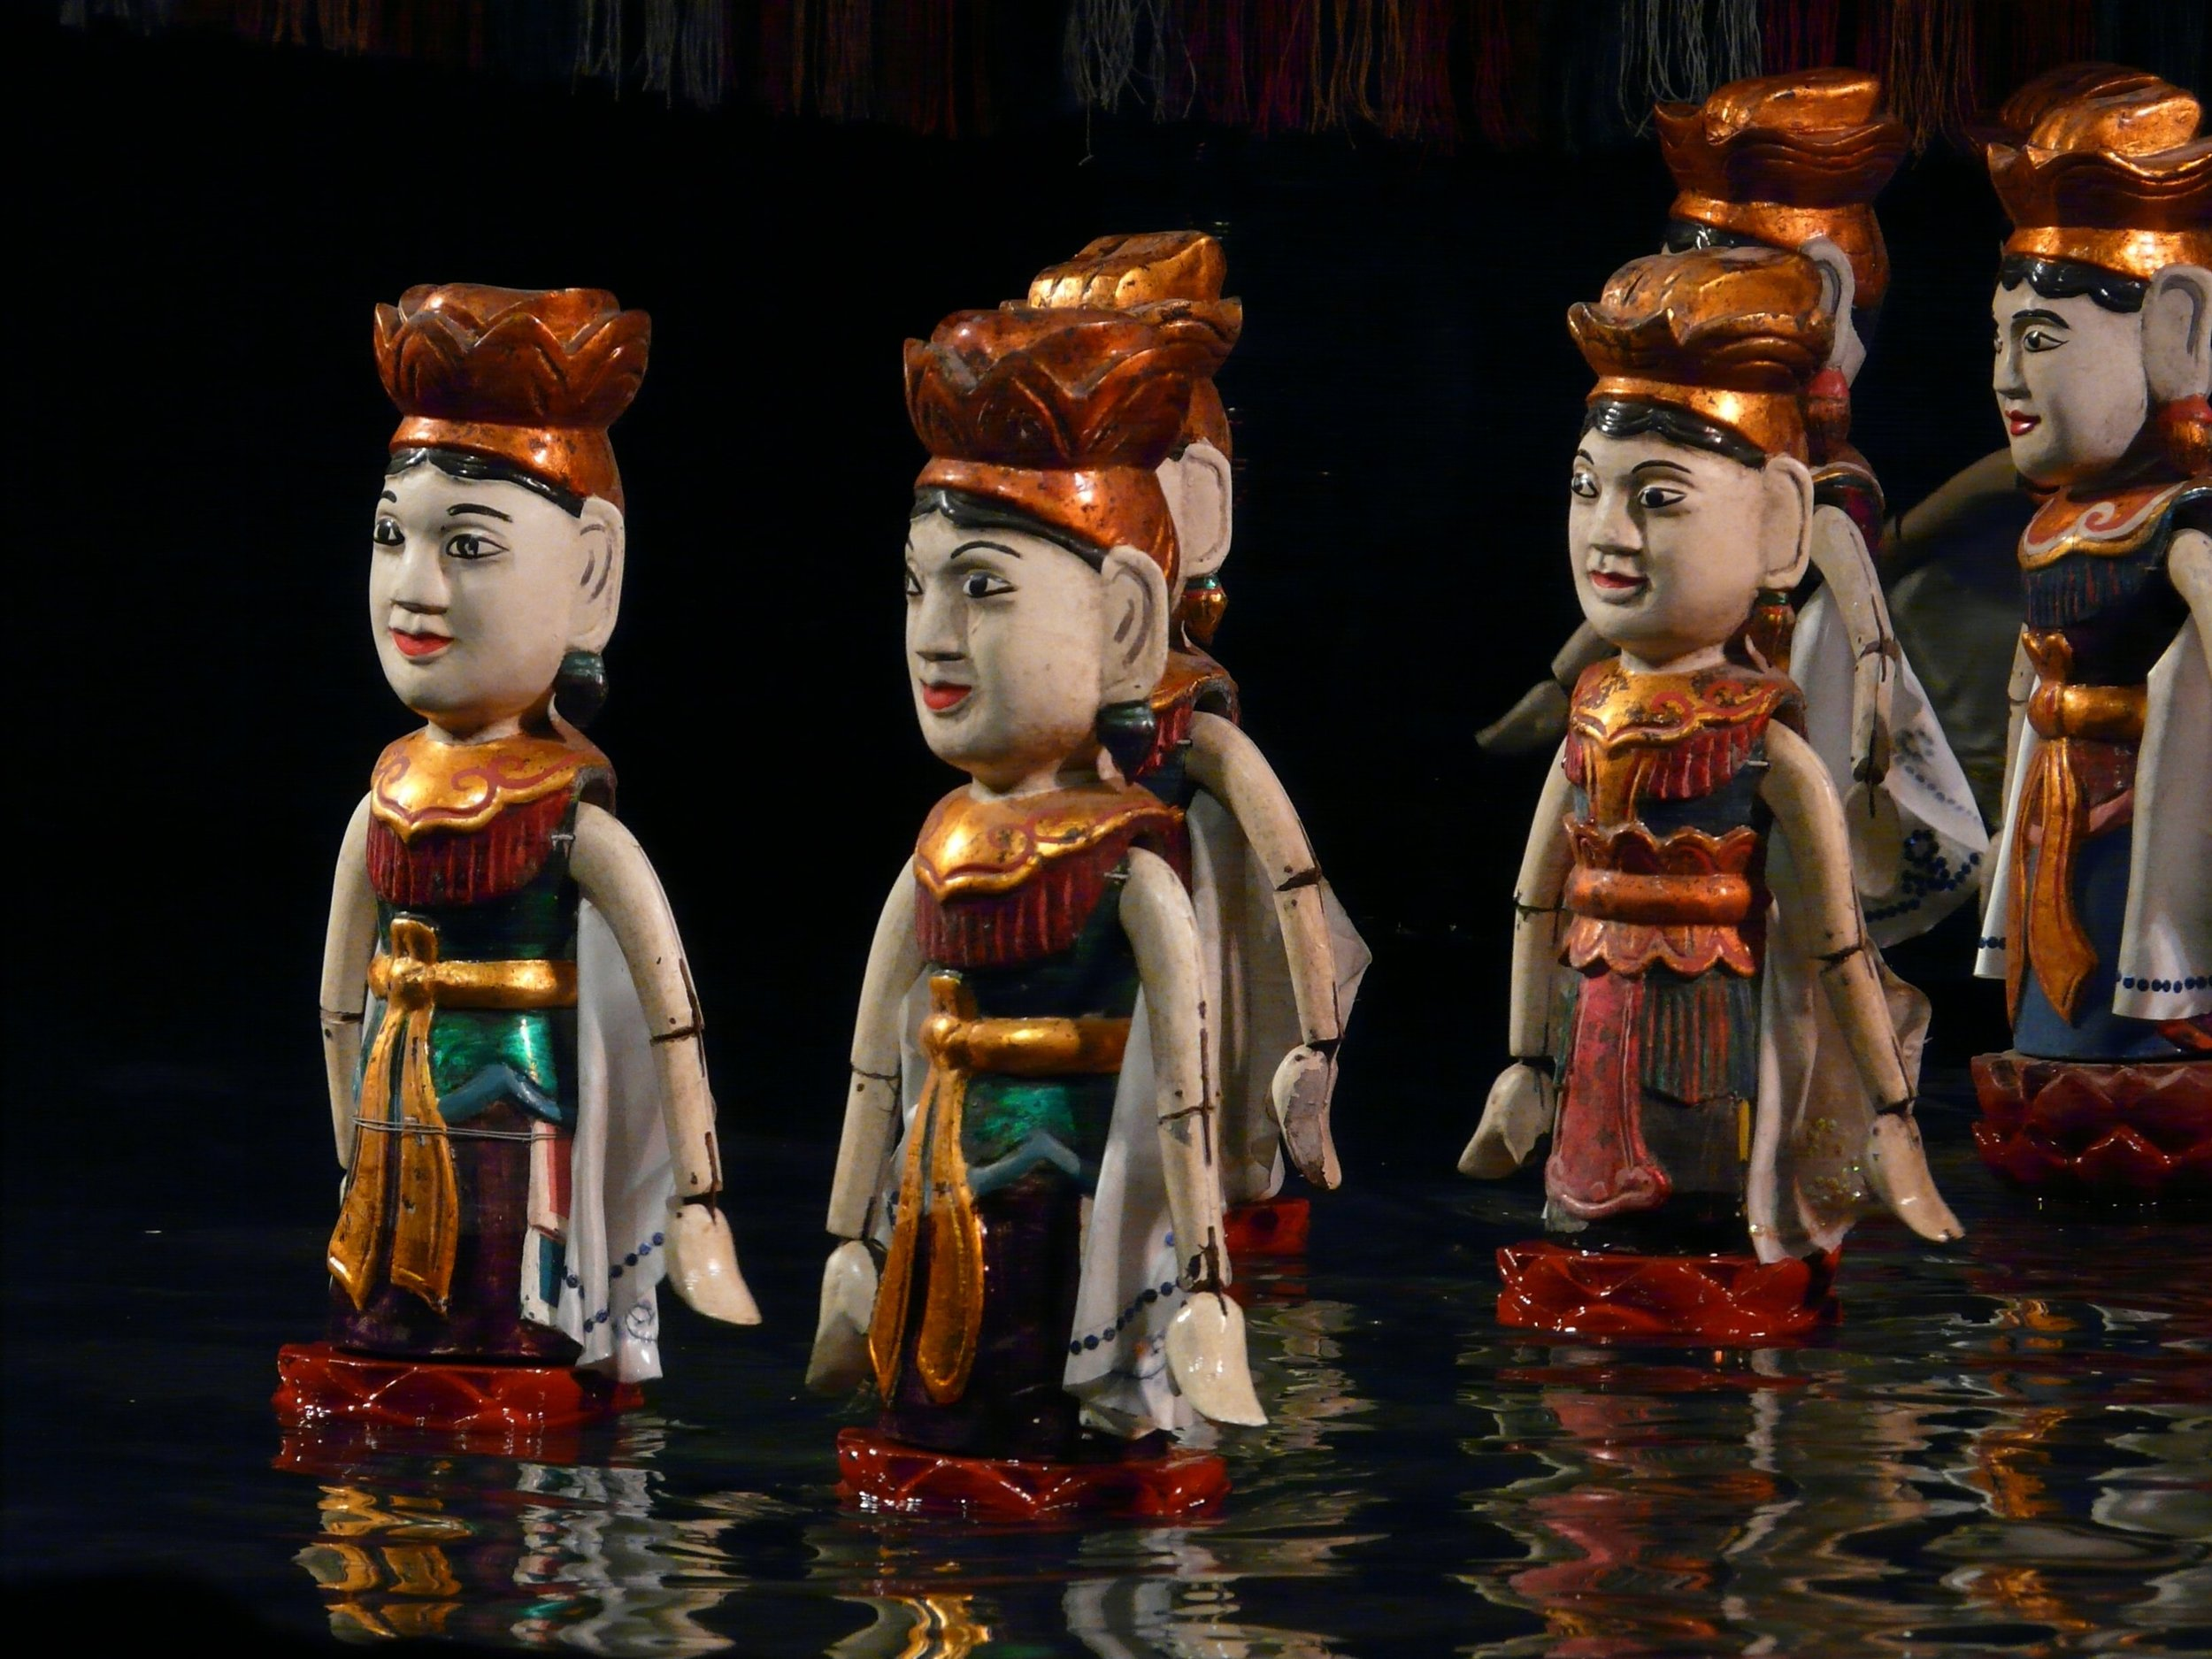 Vietnam in 3 Weeks - Water Puppet Shows in Saigon/Ho Chi Minh City